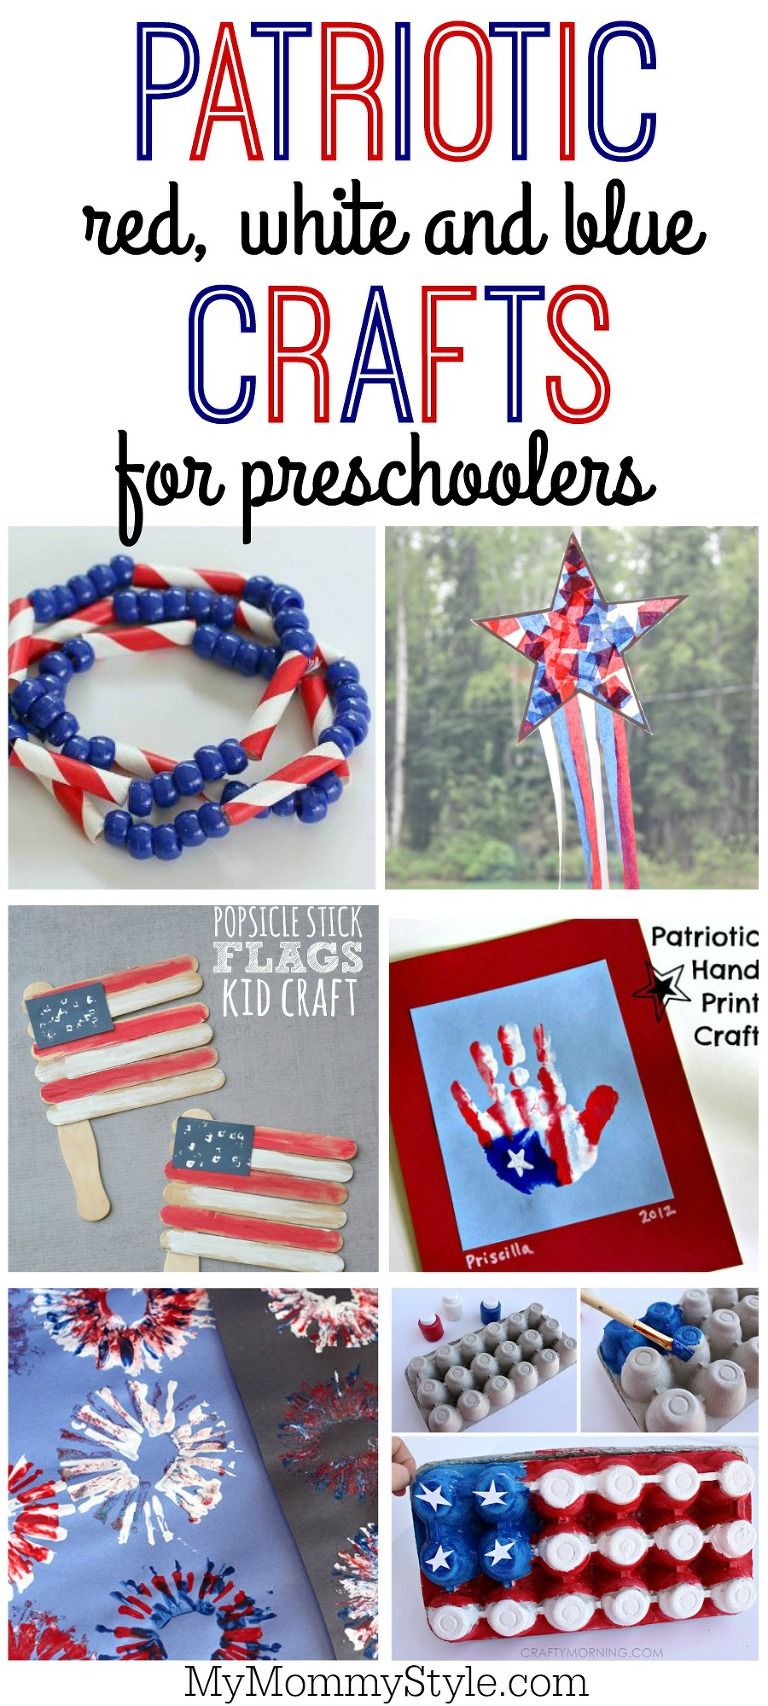 Patriotic red white and blue crafts for kids for 4th of july or Memorial day